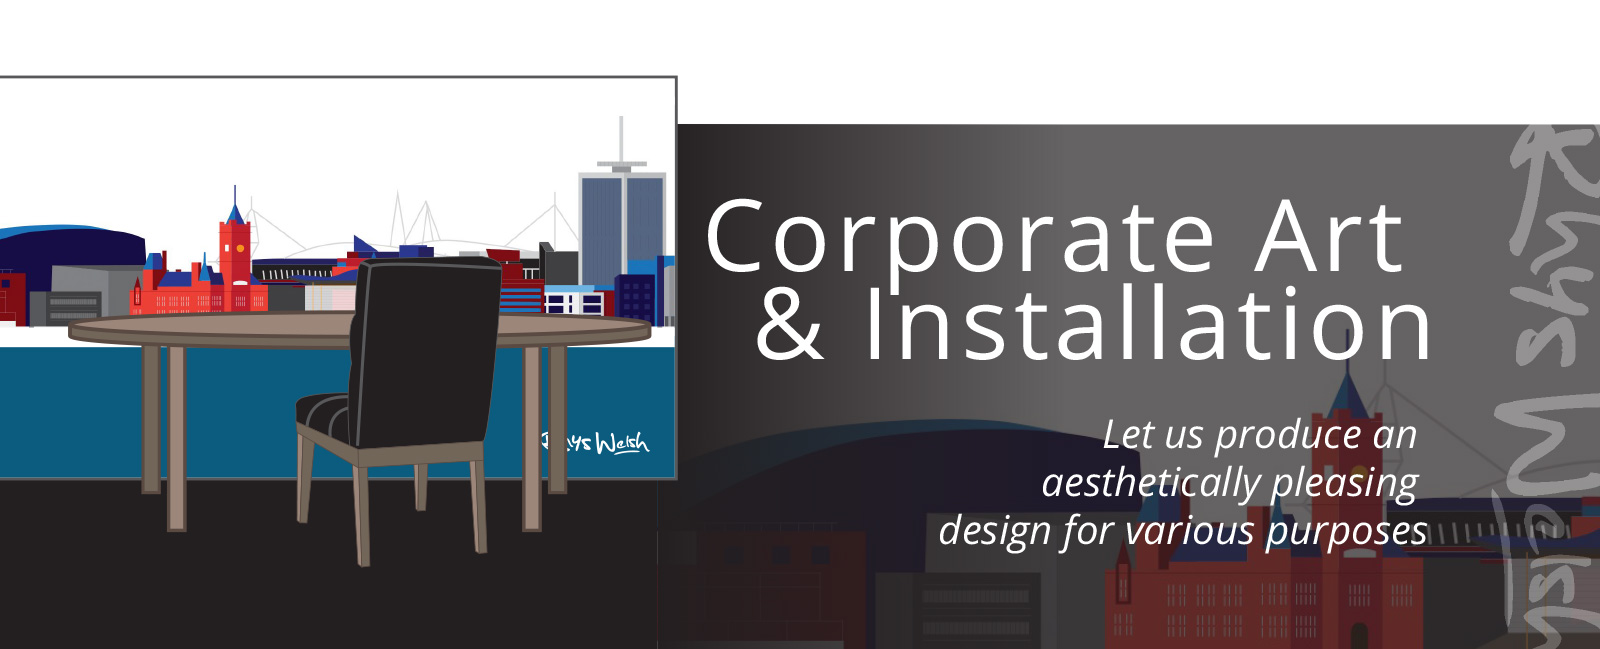 Corporate-Art-Installation-Graphic-for-websites-cardiff